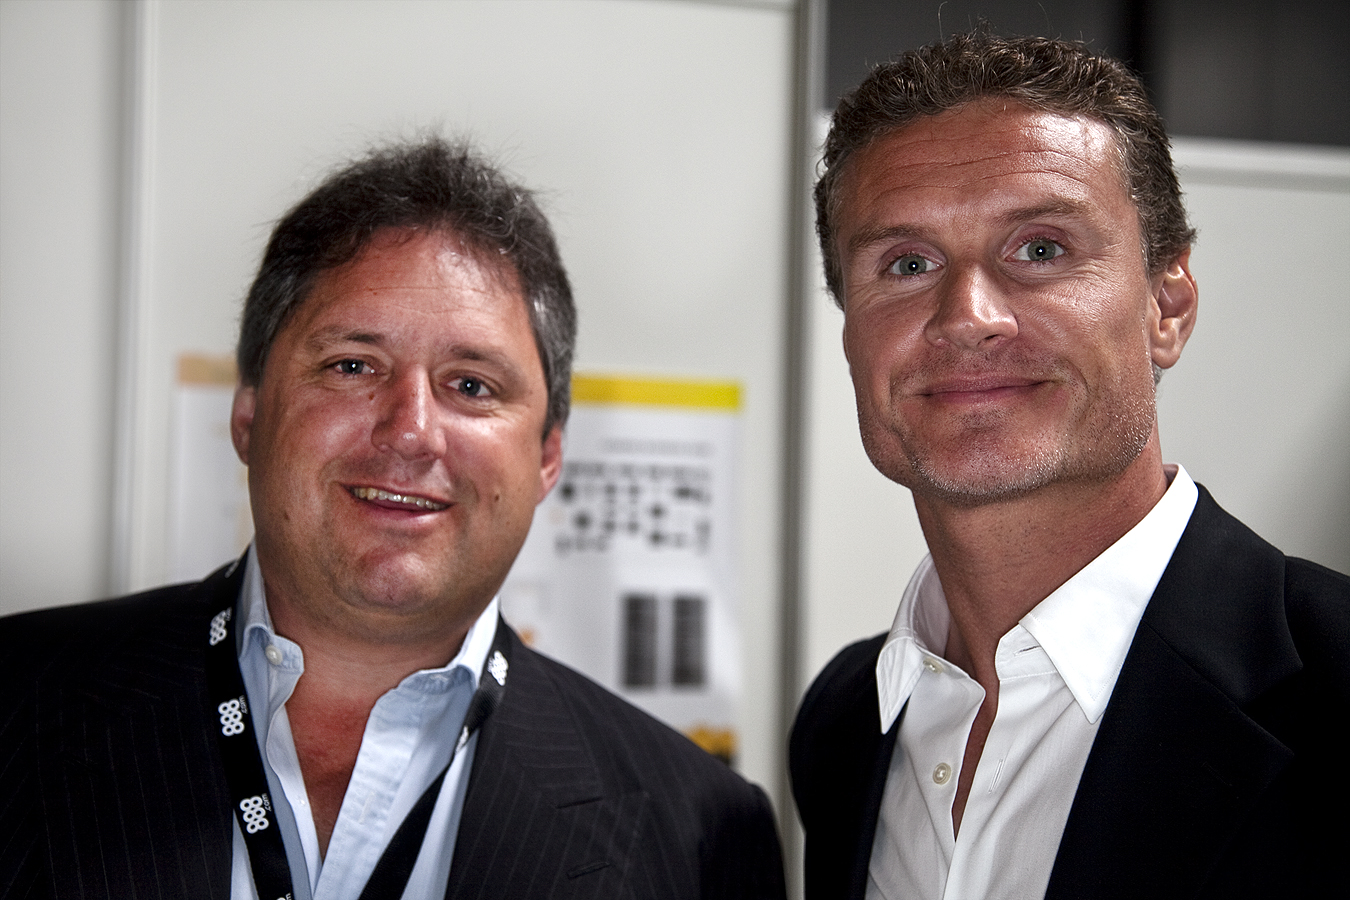 Meeting David Coulthard at the iGaming Super Show